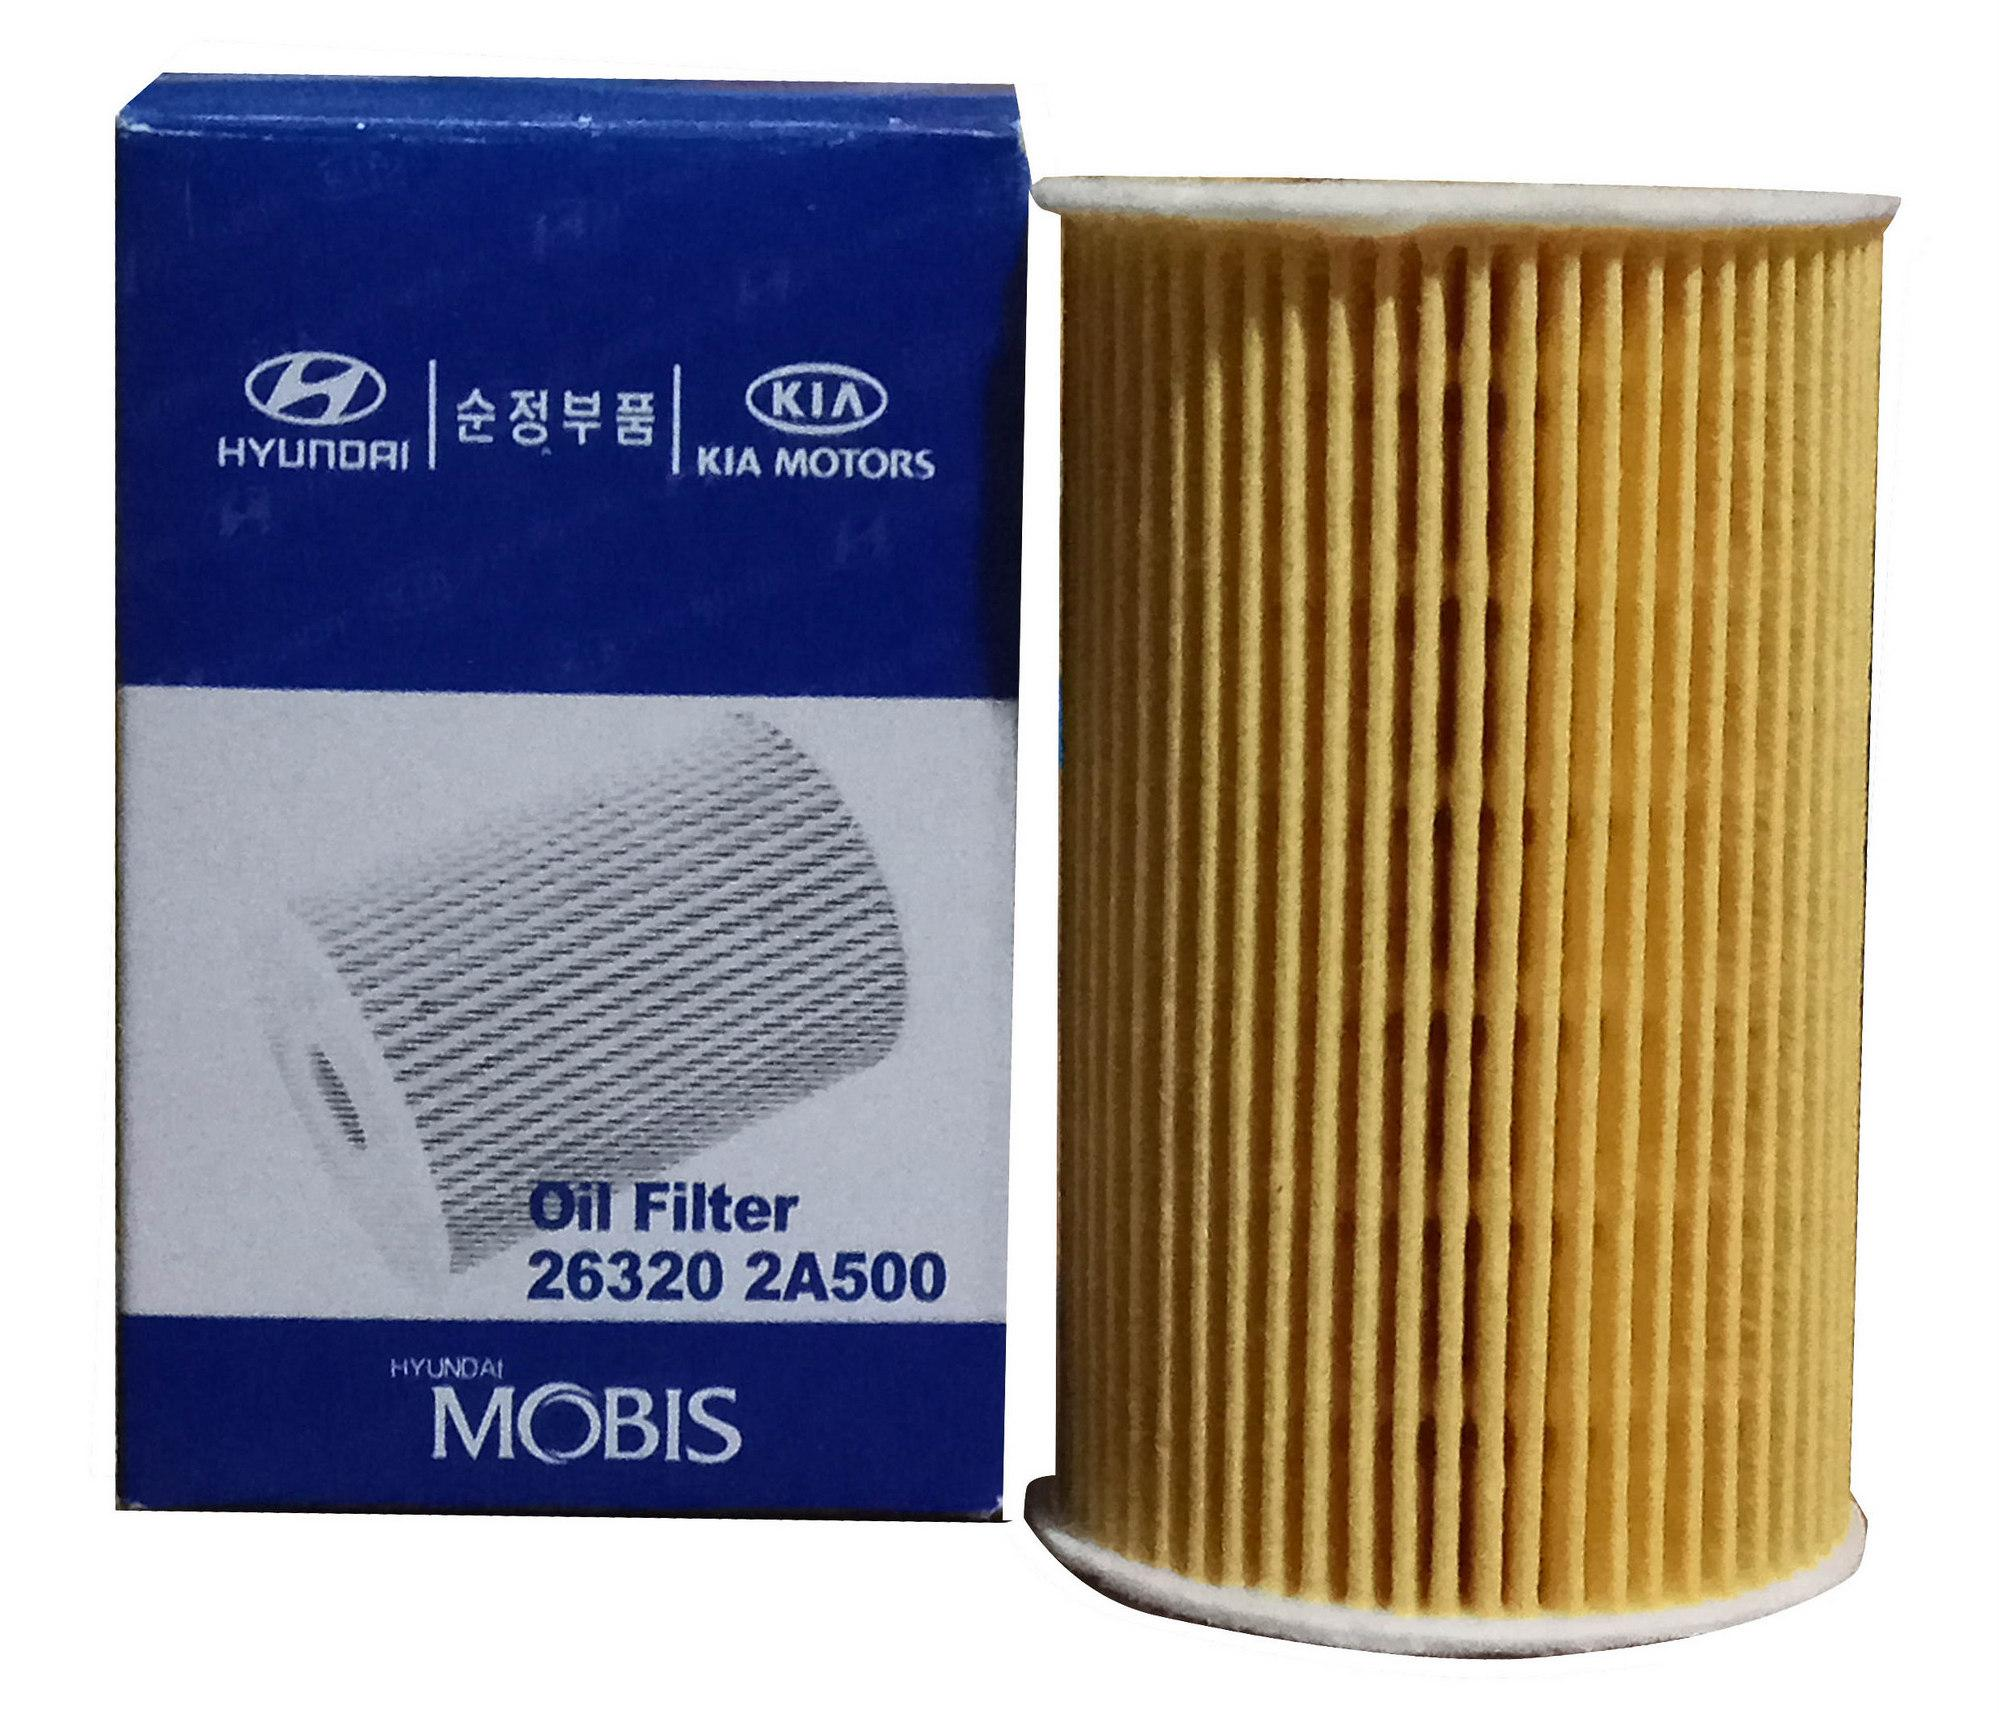 Oil Filter For Sale Adapter Online Brands Prices 1998 Volvo 5 0 Gl Fuel Location Hyundai Mobis 26320 2a500 Accent Crdi Kia Optima